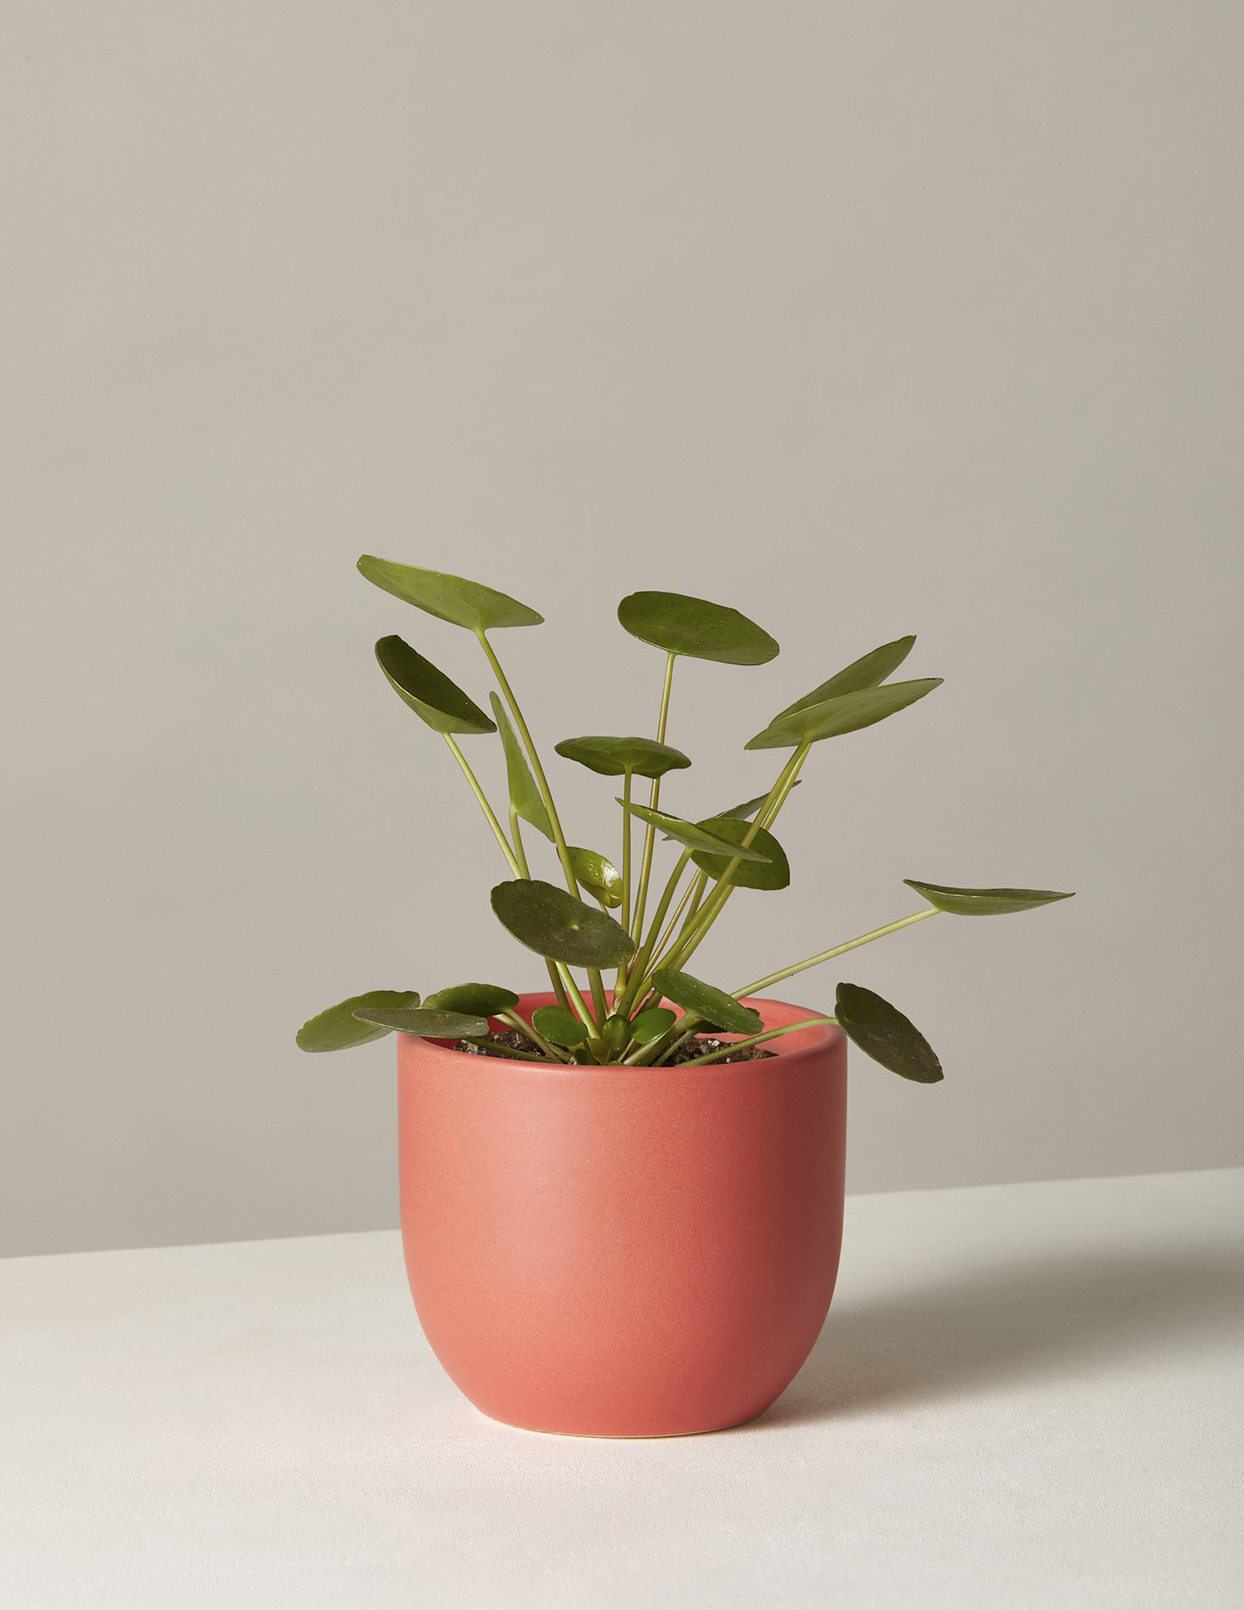 green plant in simple red planter